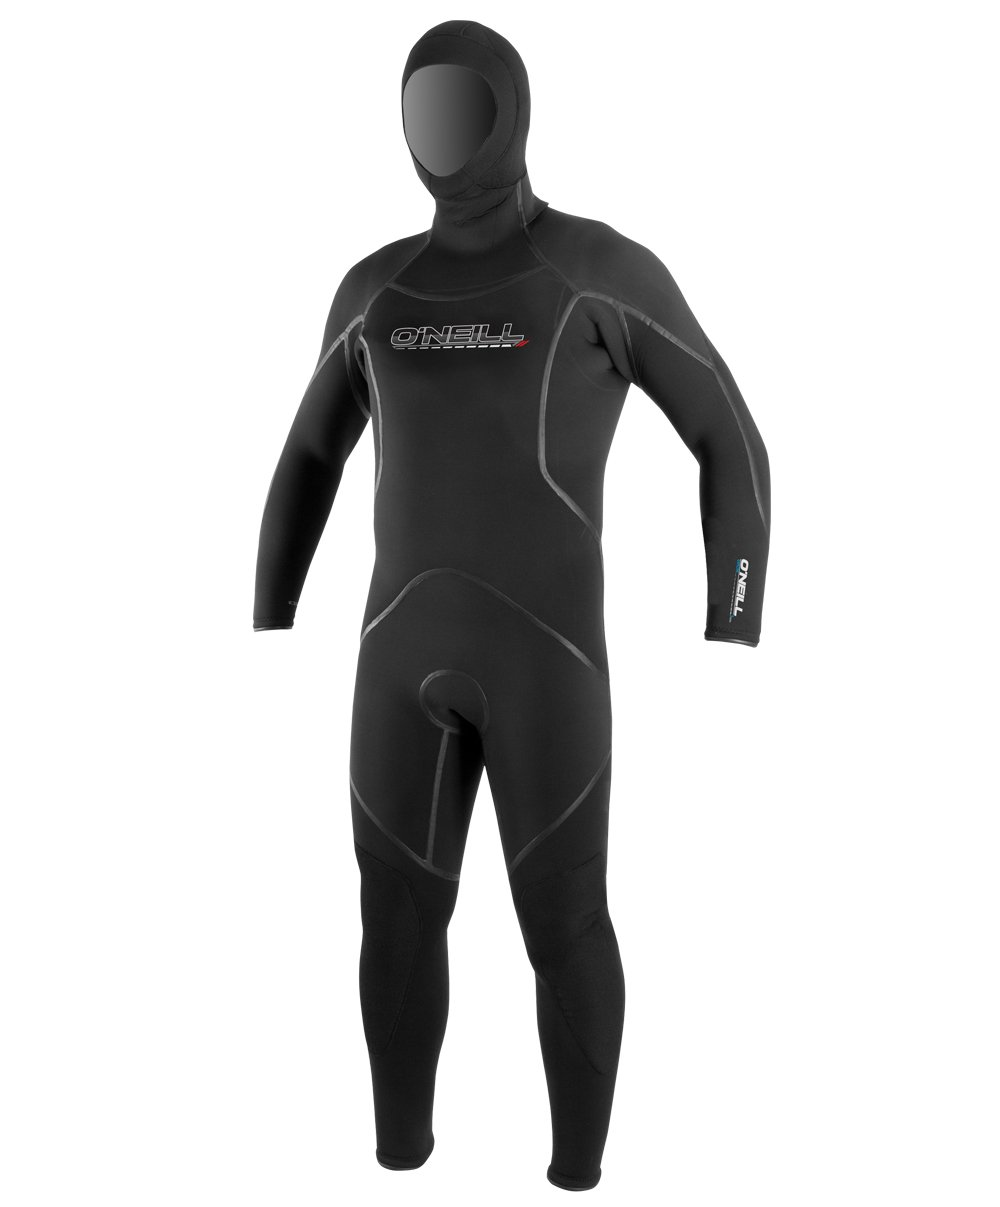 O'Neill Men's Dive J-Type 7mm Back Zip Full Wetsuit with Hood, Black, Large Short by O'Neill Wetsuits (Image #1)